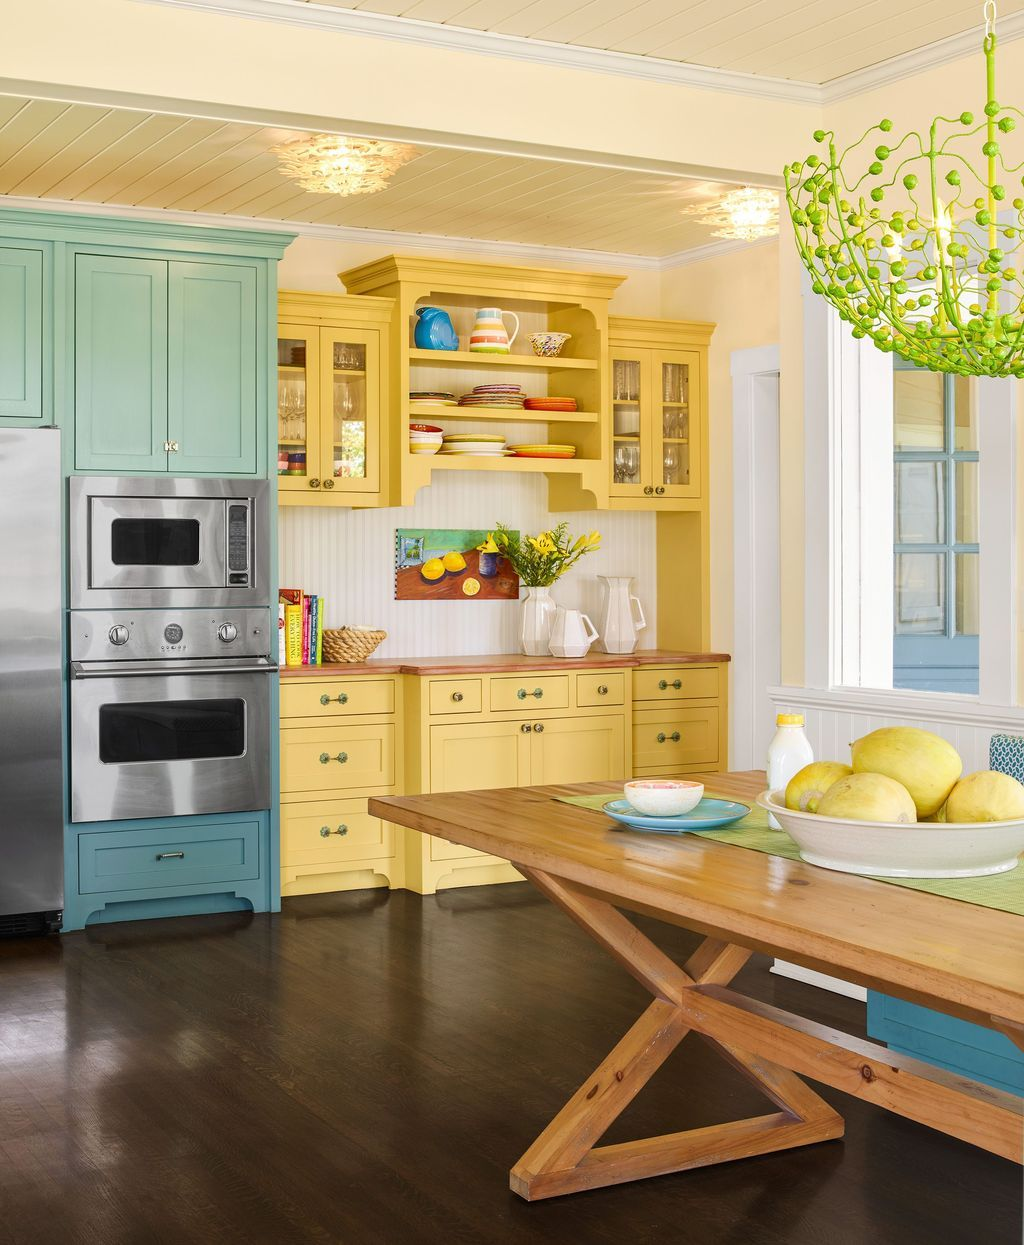 30 Lovely Colorful Kitchen Decorating Ideas In 2020 With Images